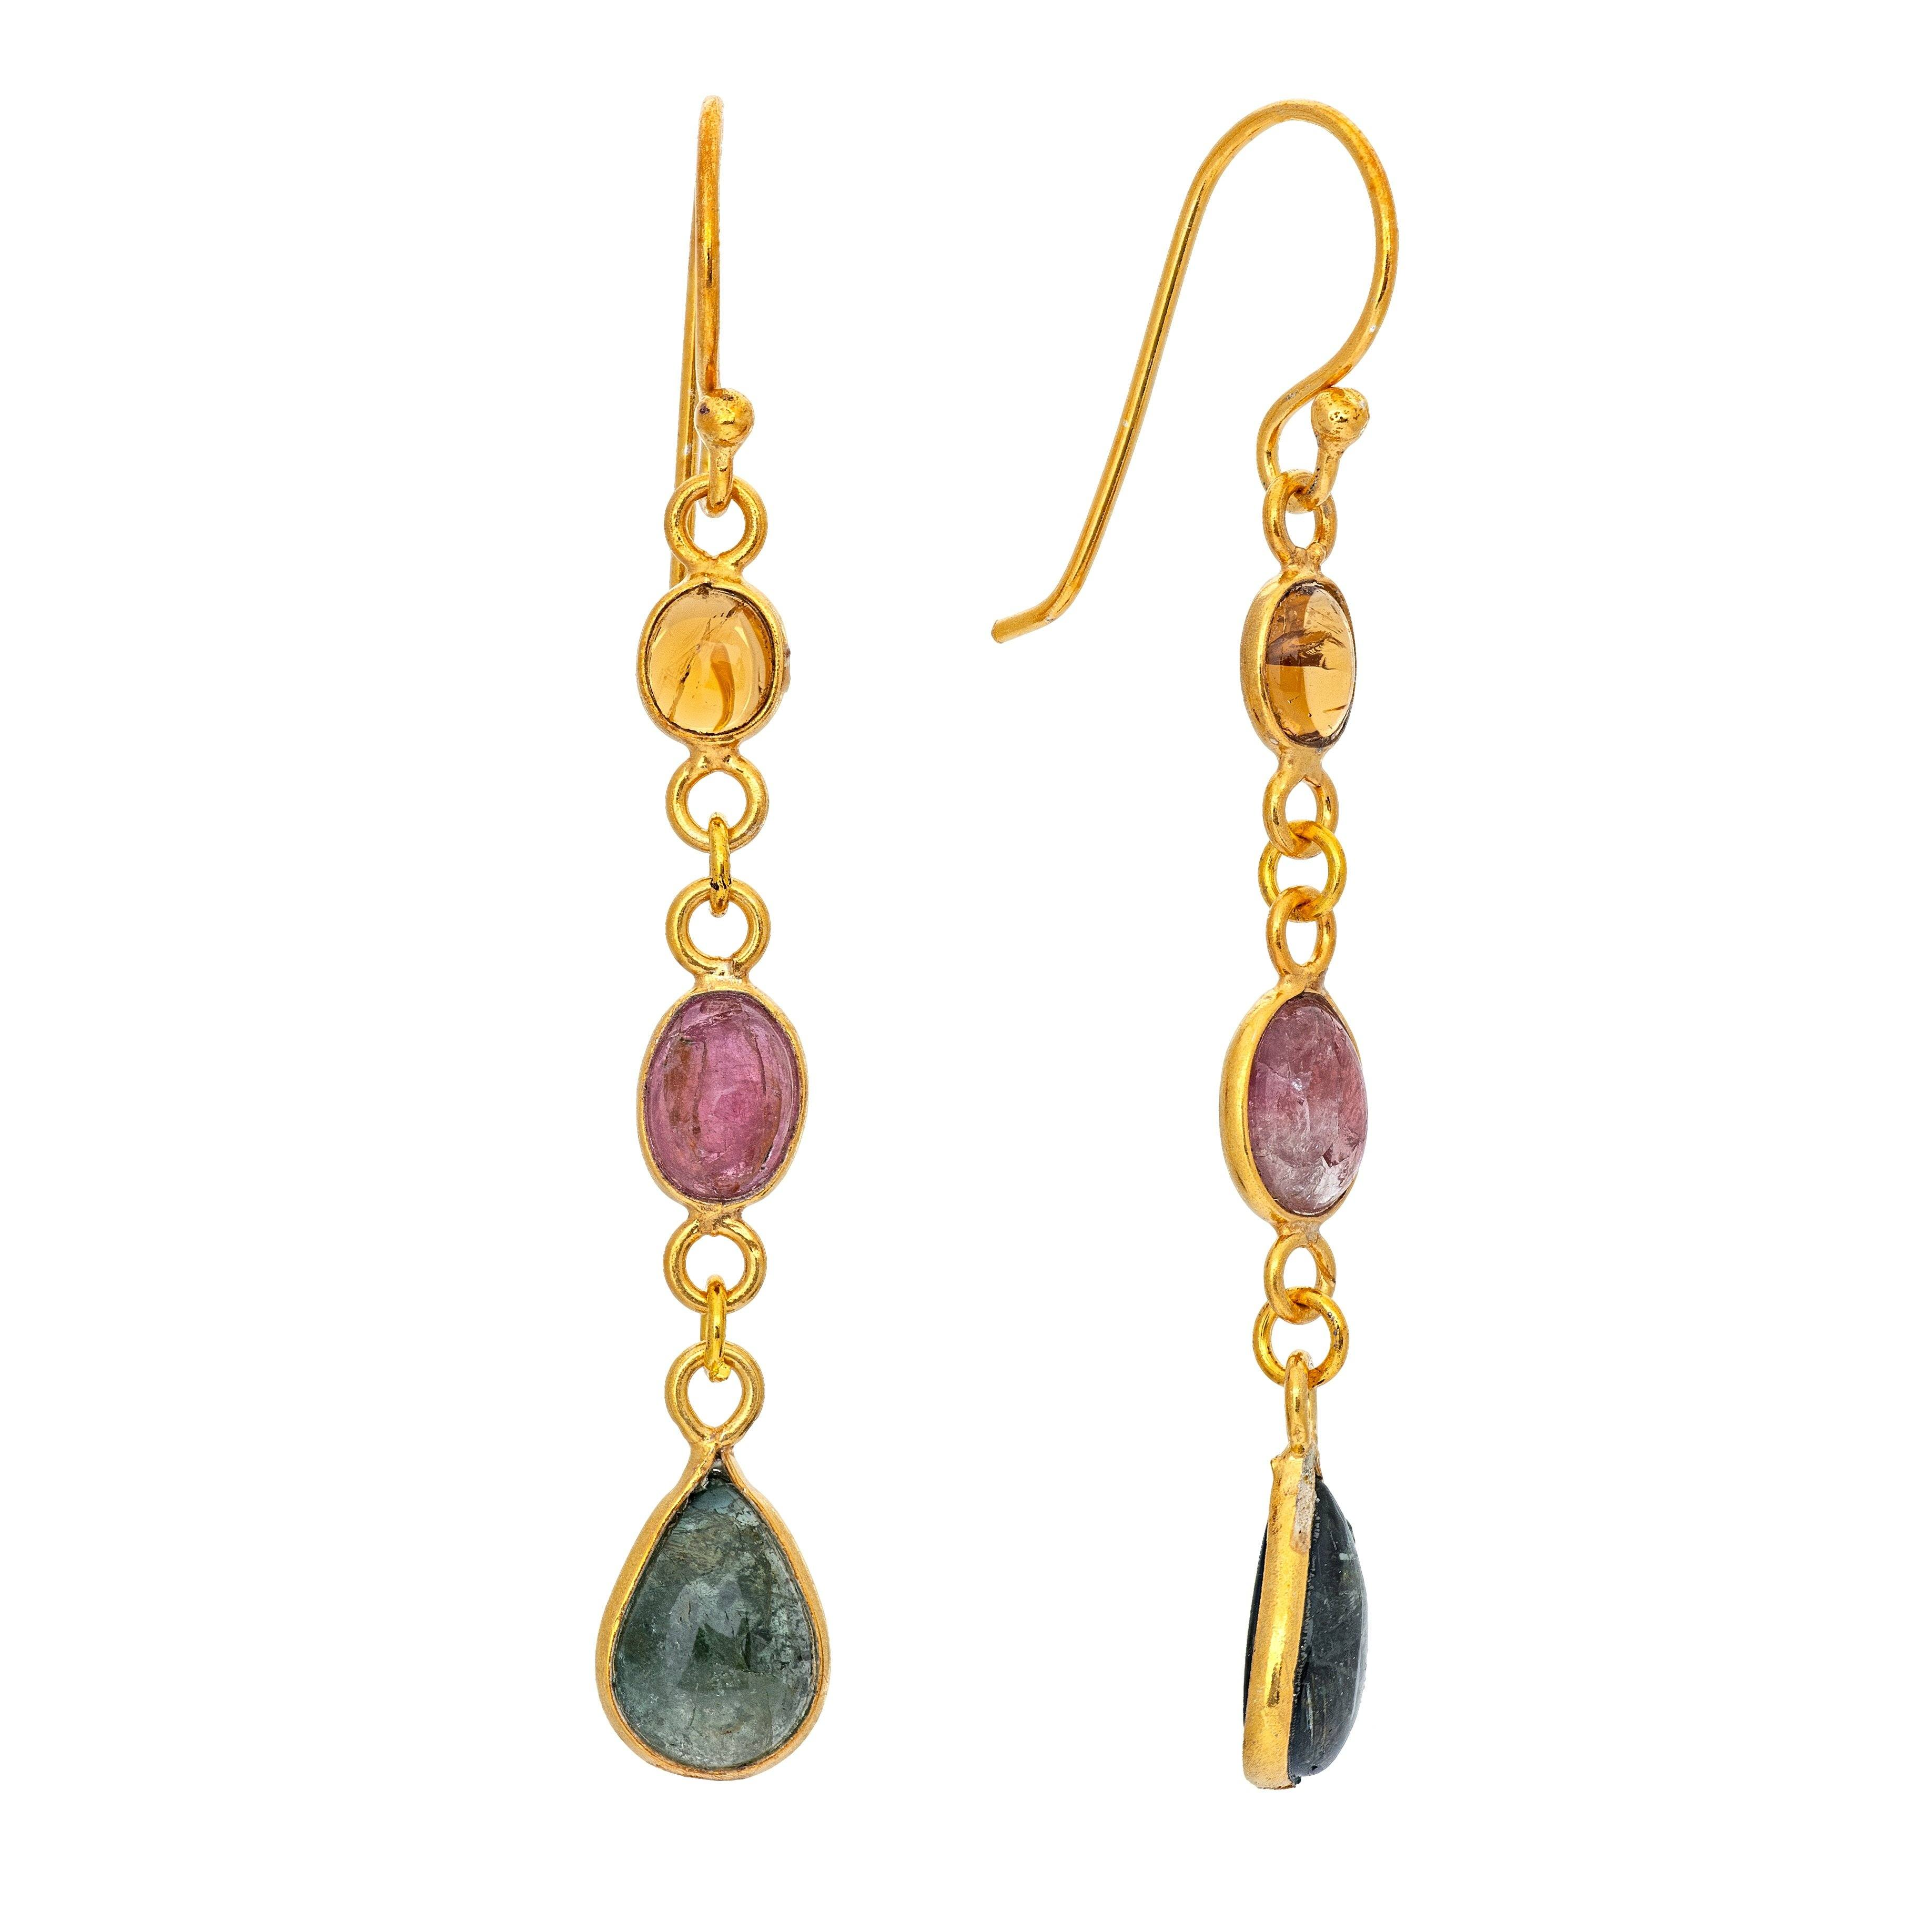 NAÏ tourmaline earrings - MadamSiam